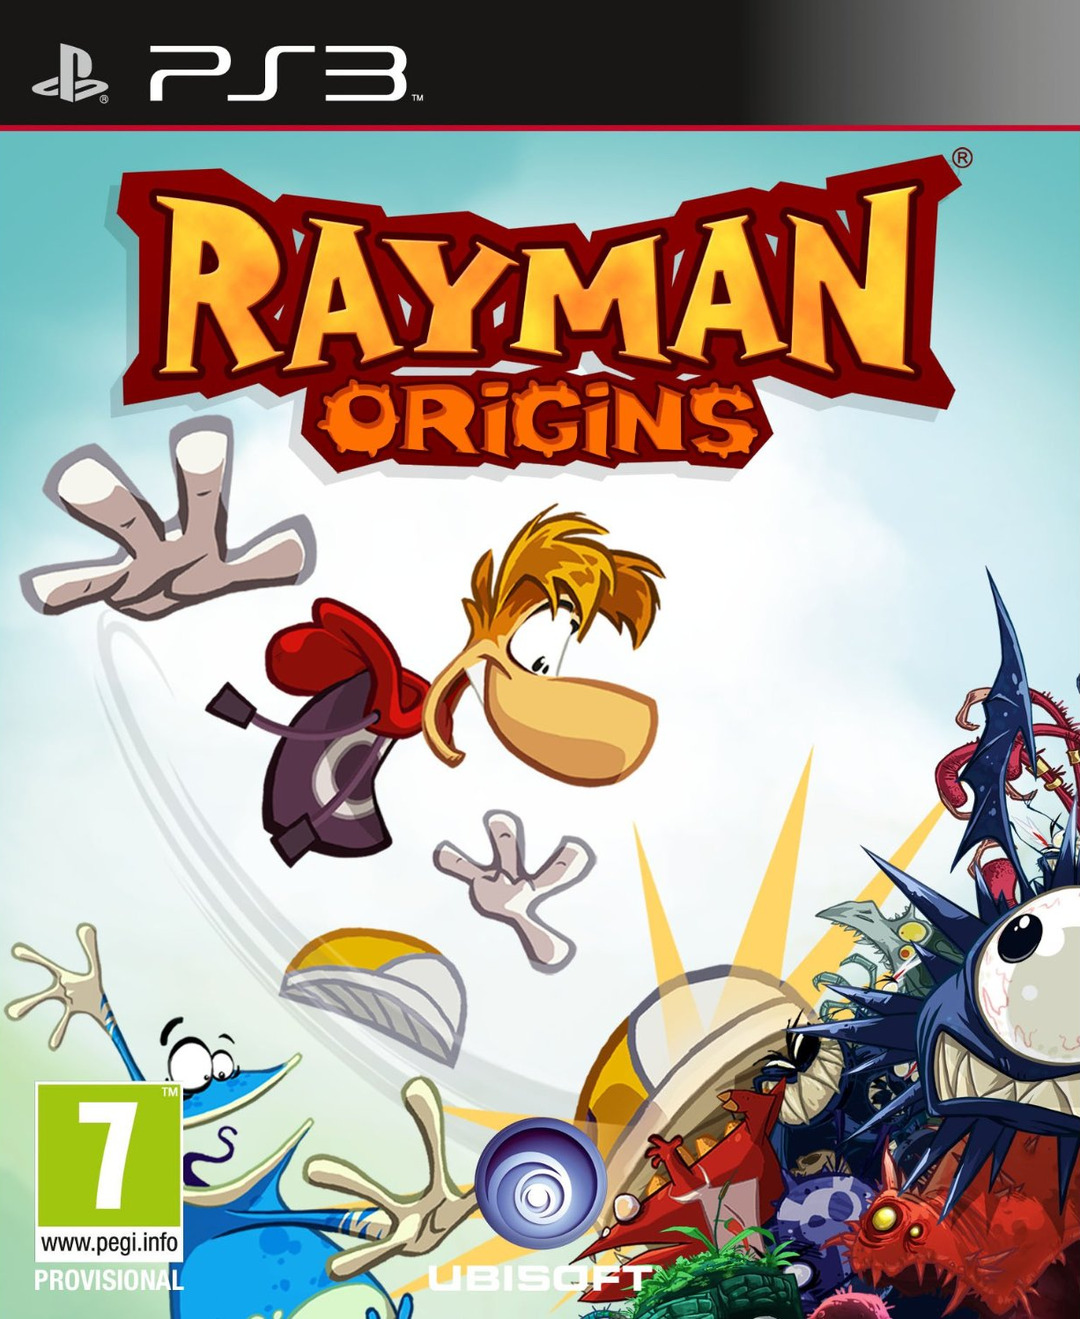 https://i1.wp.com/image.jeuxvideo.com/images/jaquettes/00037352/jaquette-rayman-origins-playstation-3-ps3-cover-avant-g-1311070114.jpg